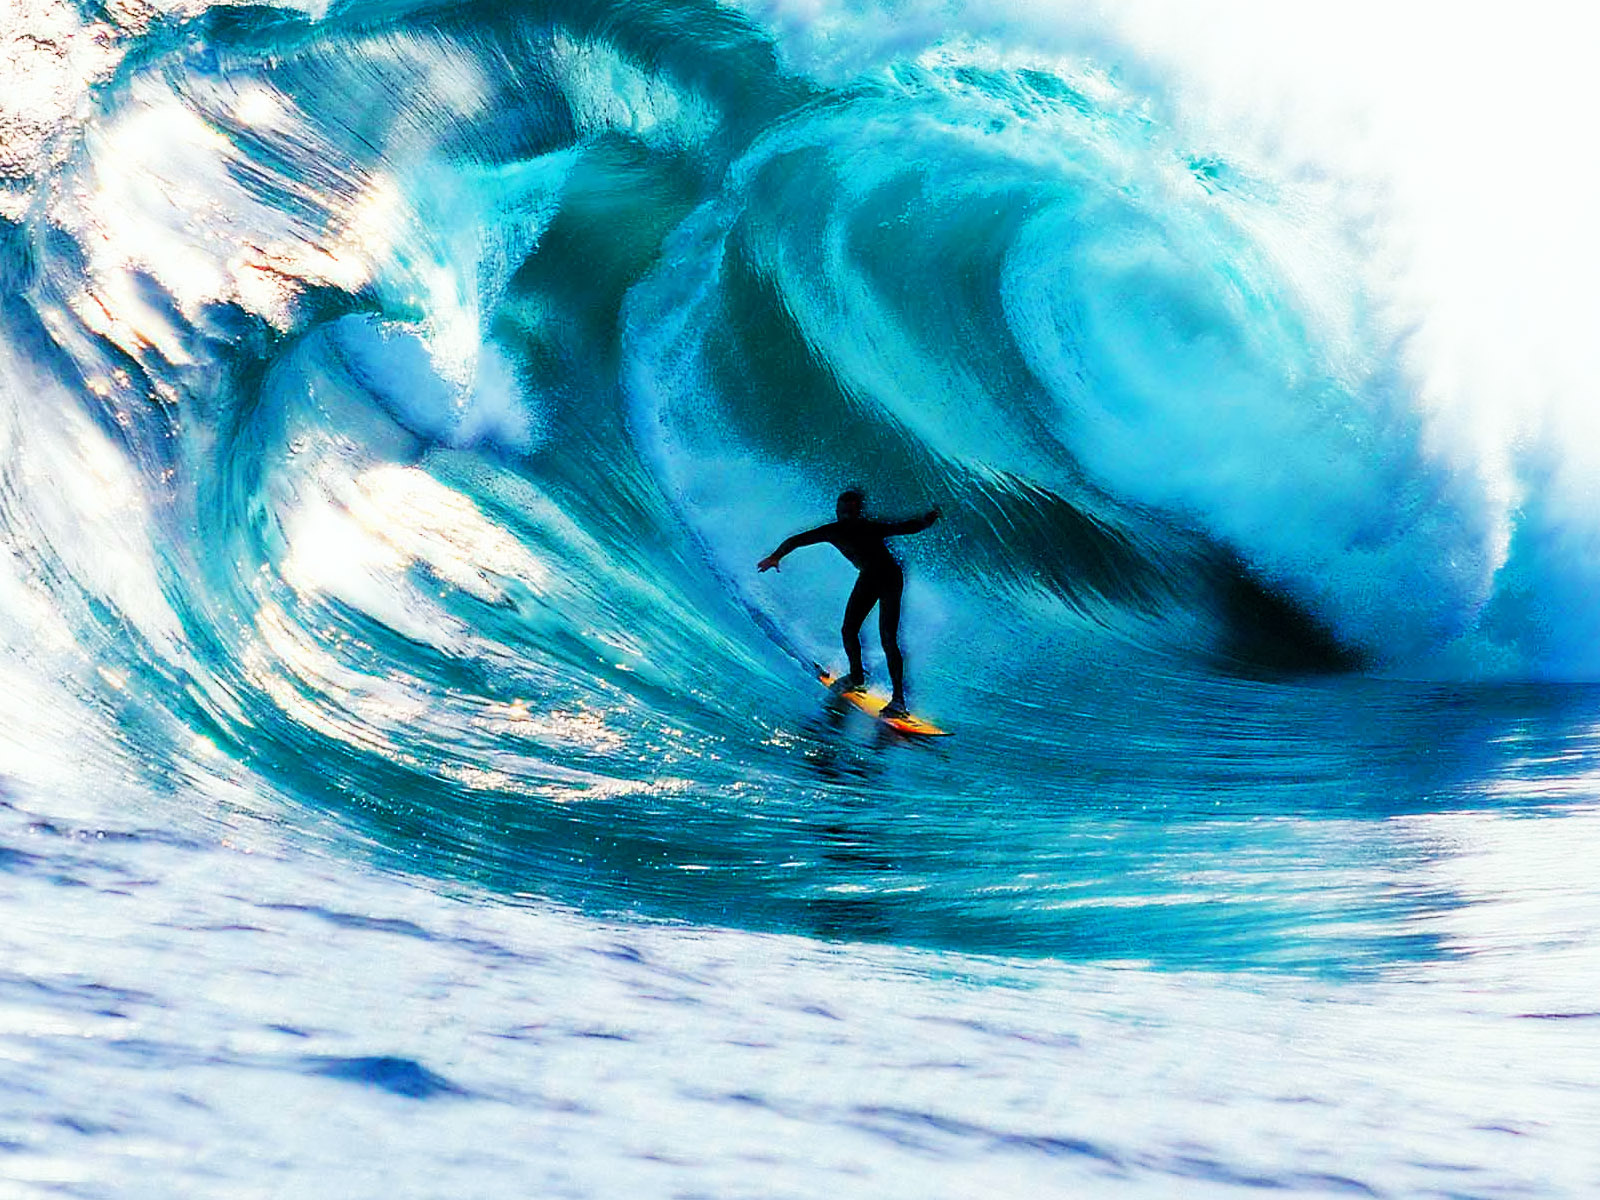 Surfing Surfer Wallpaper Free Hd Backgrounds Images Pictures